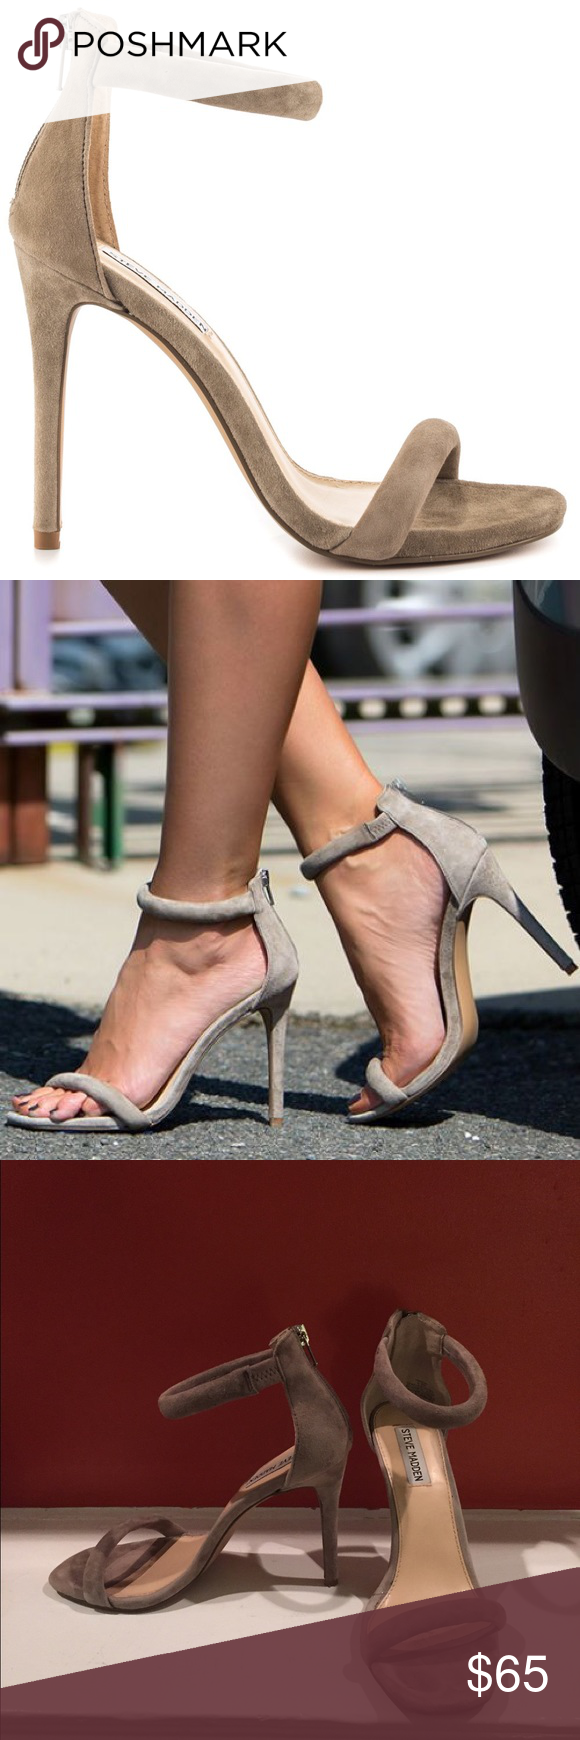 Steve Madden Fancci Suede Sandal Heels Taupe 8.5 Steve Madden Fancci suede sandal heels in taupe size 8.5. Worn less than 5 times this summer! Unavailable online. Steve Madden Shoes Heels